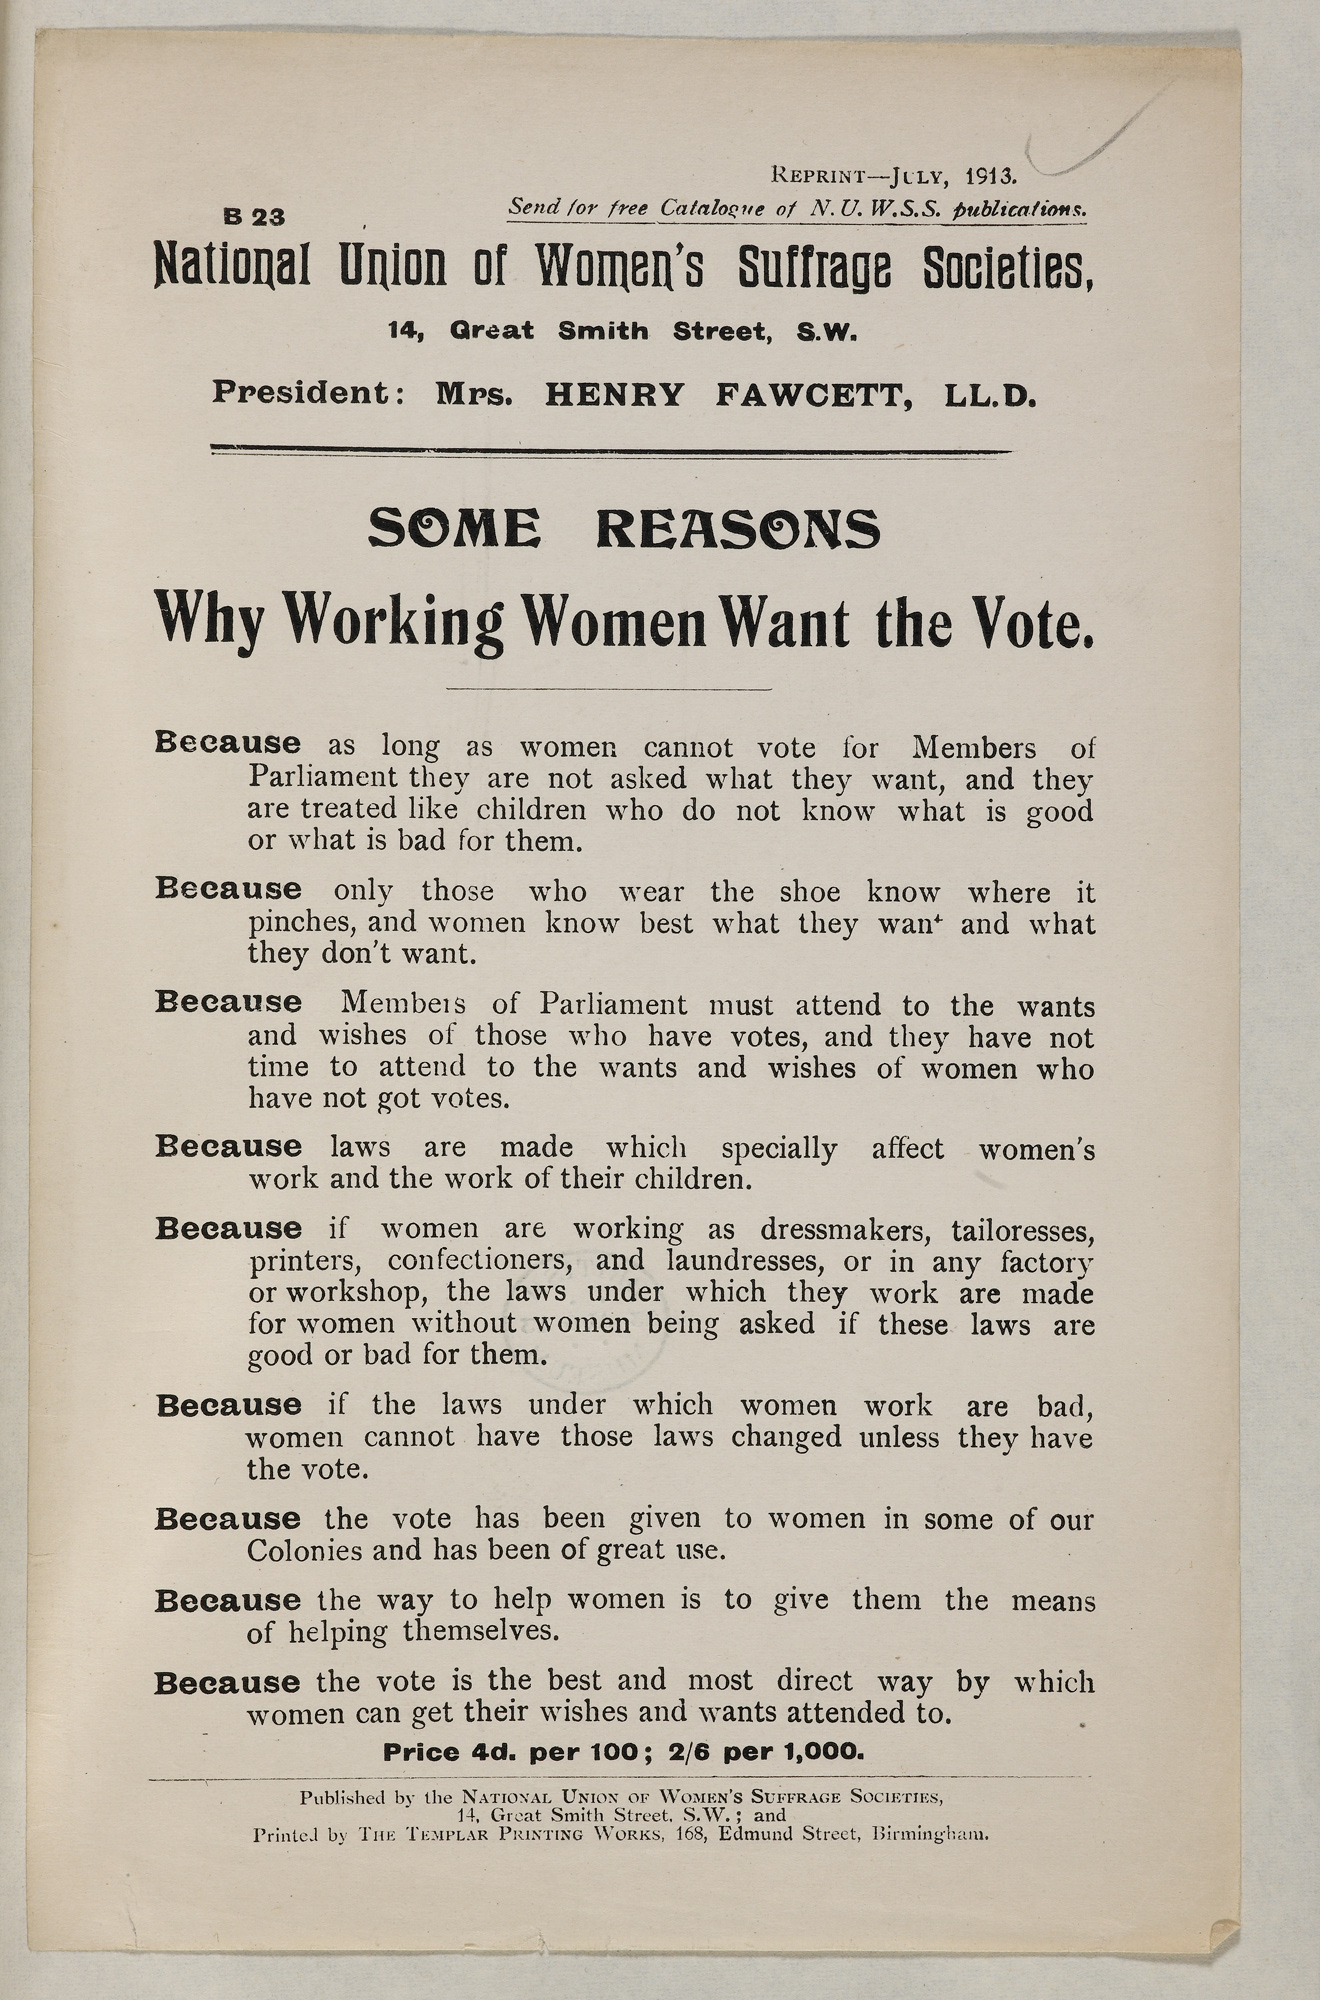 Why Working Women Want the Vote